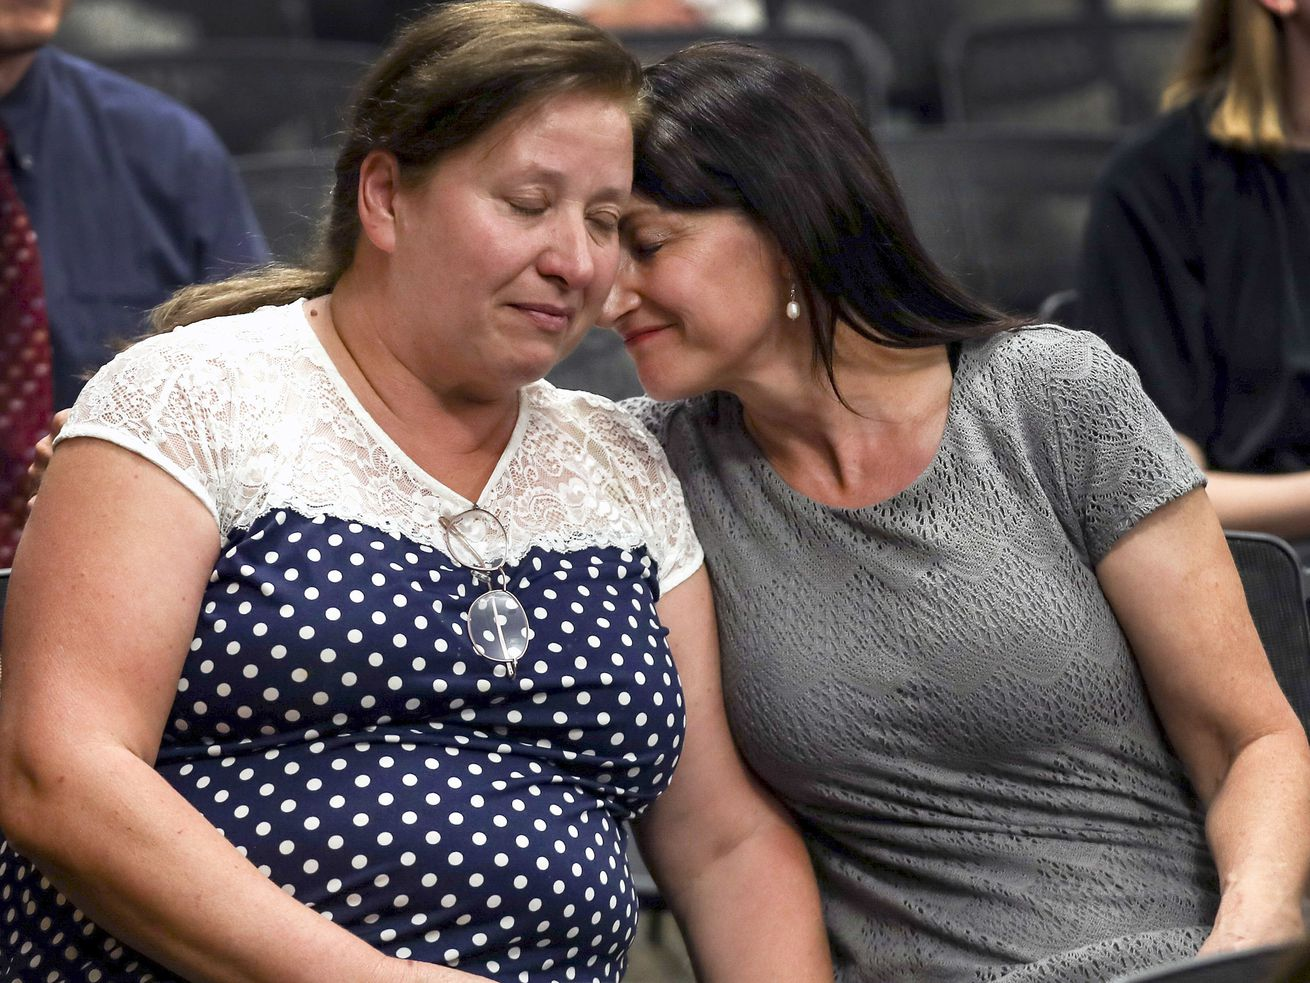 Maria Almiron, grandmother of 3-year-old Gabriel Almiron, left, and Brenda Marsh, mother of Emily Almiron, Gabriel's mother, embrace after speaking at a press conference at Orem City Hall on Wednesday, Aug. 7, 2019.